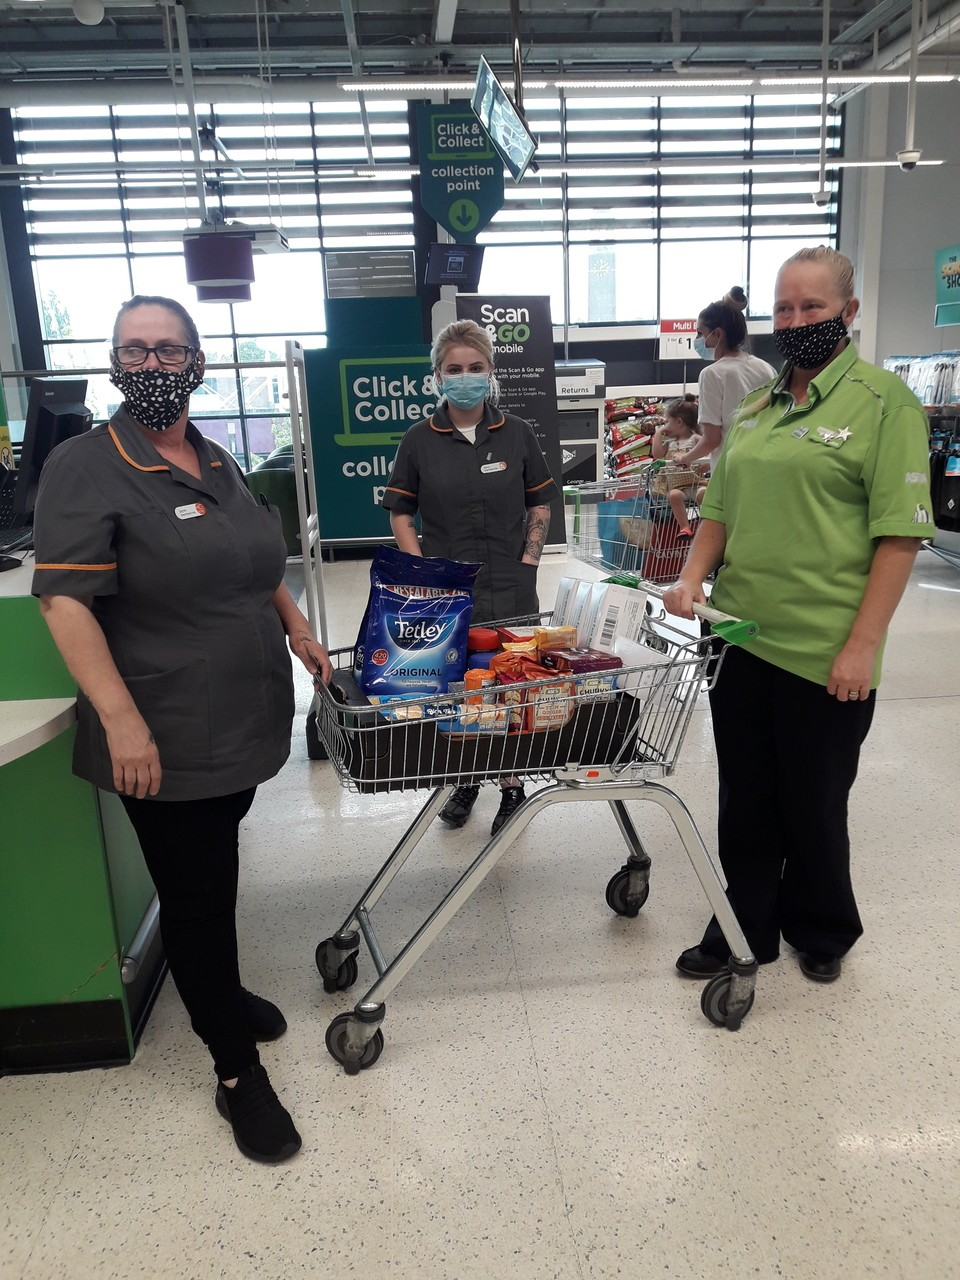 Donations from Asda Swinton to thank local care home staff | Asda Swinton